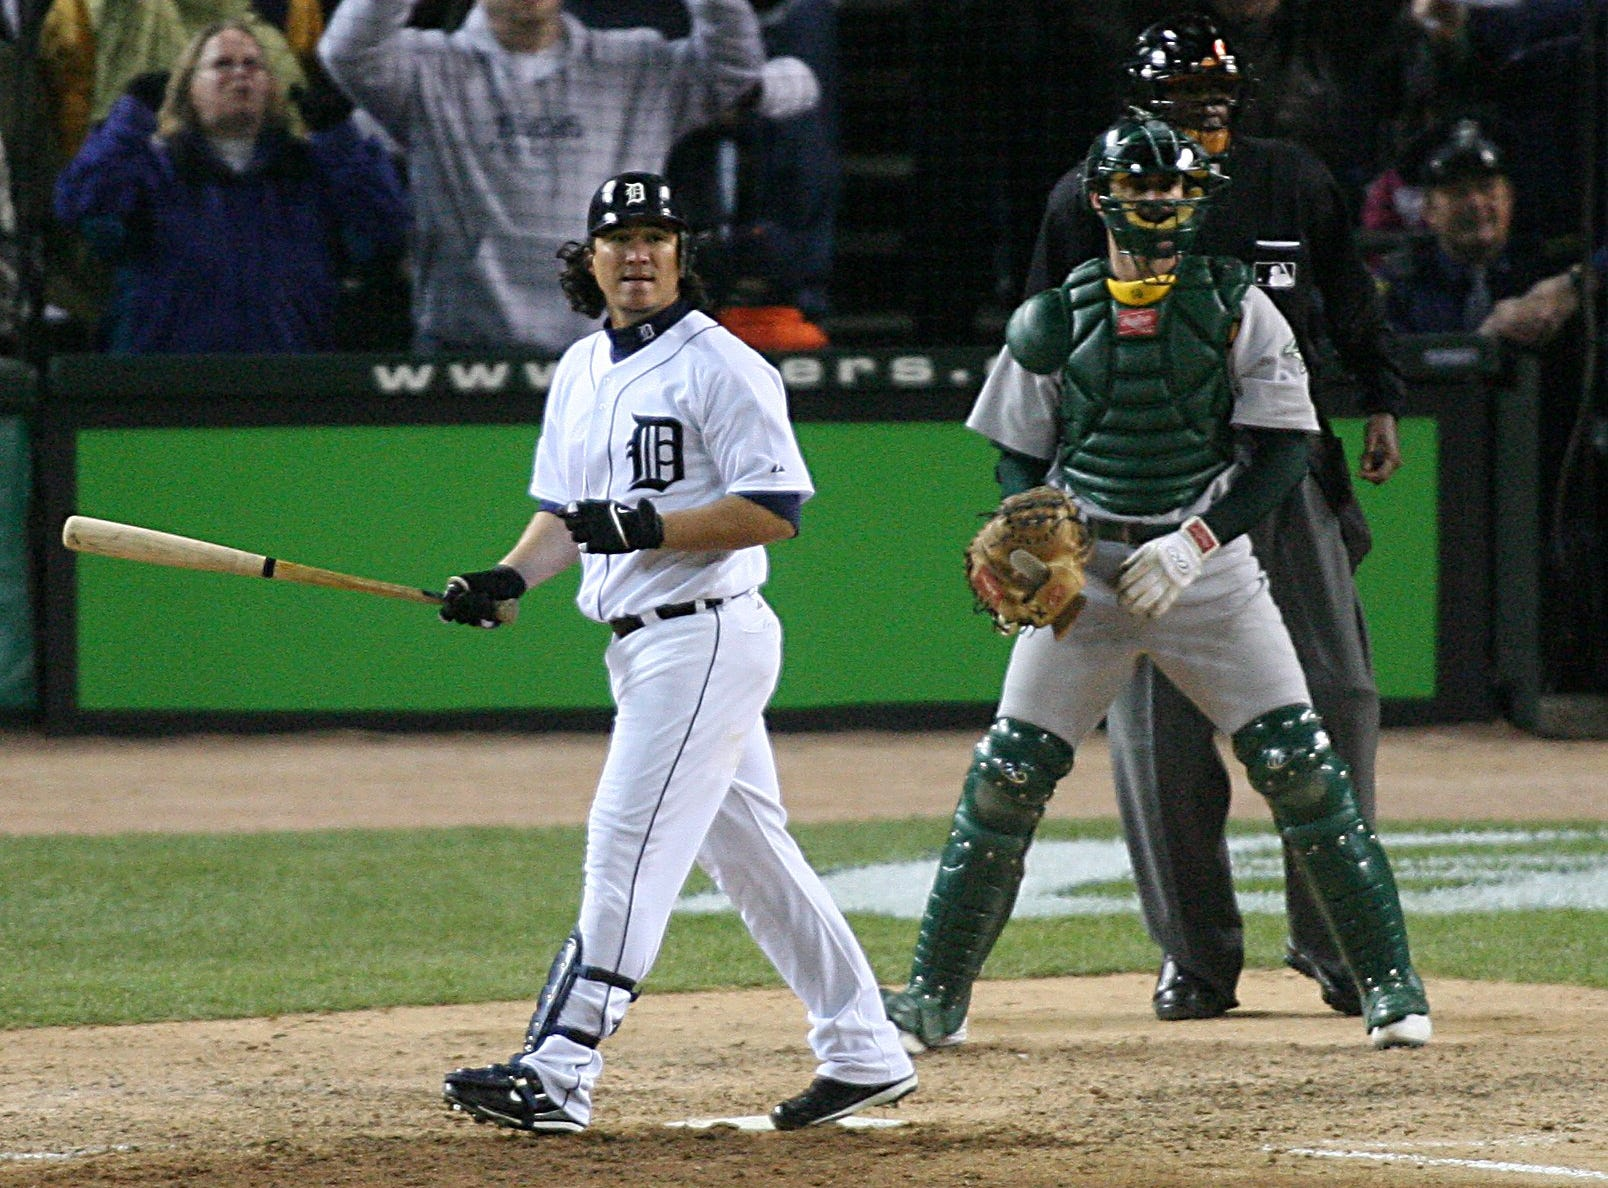 Tigers outfielder Magglio Ordonez hits a 3-run, walk-off home run to defeat the Athletics, 6-3, in Game 4 of the American League Championship Series at Comerica Park on Saturday, Oct. 14, 2006.